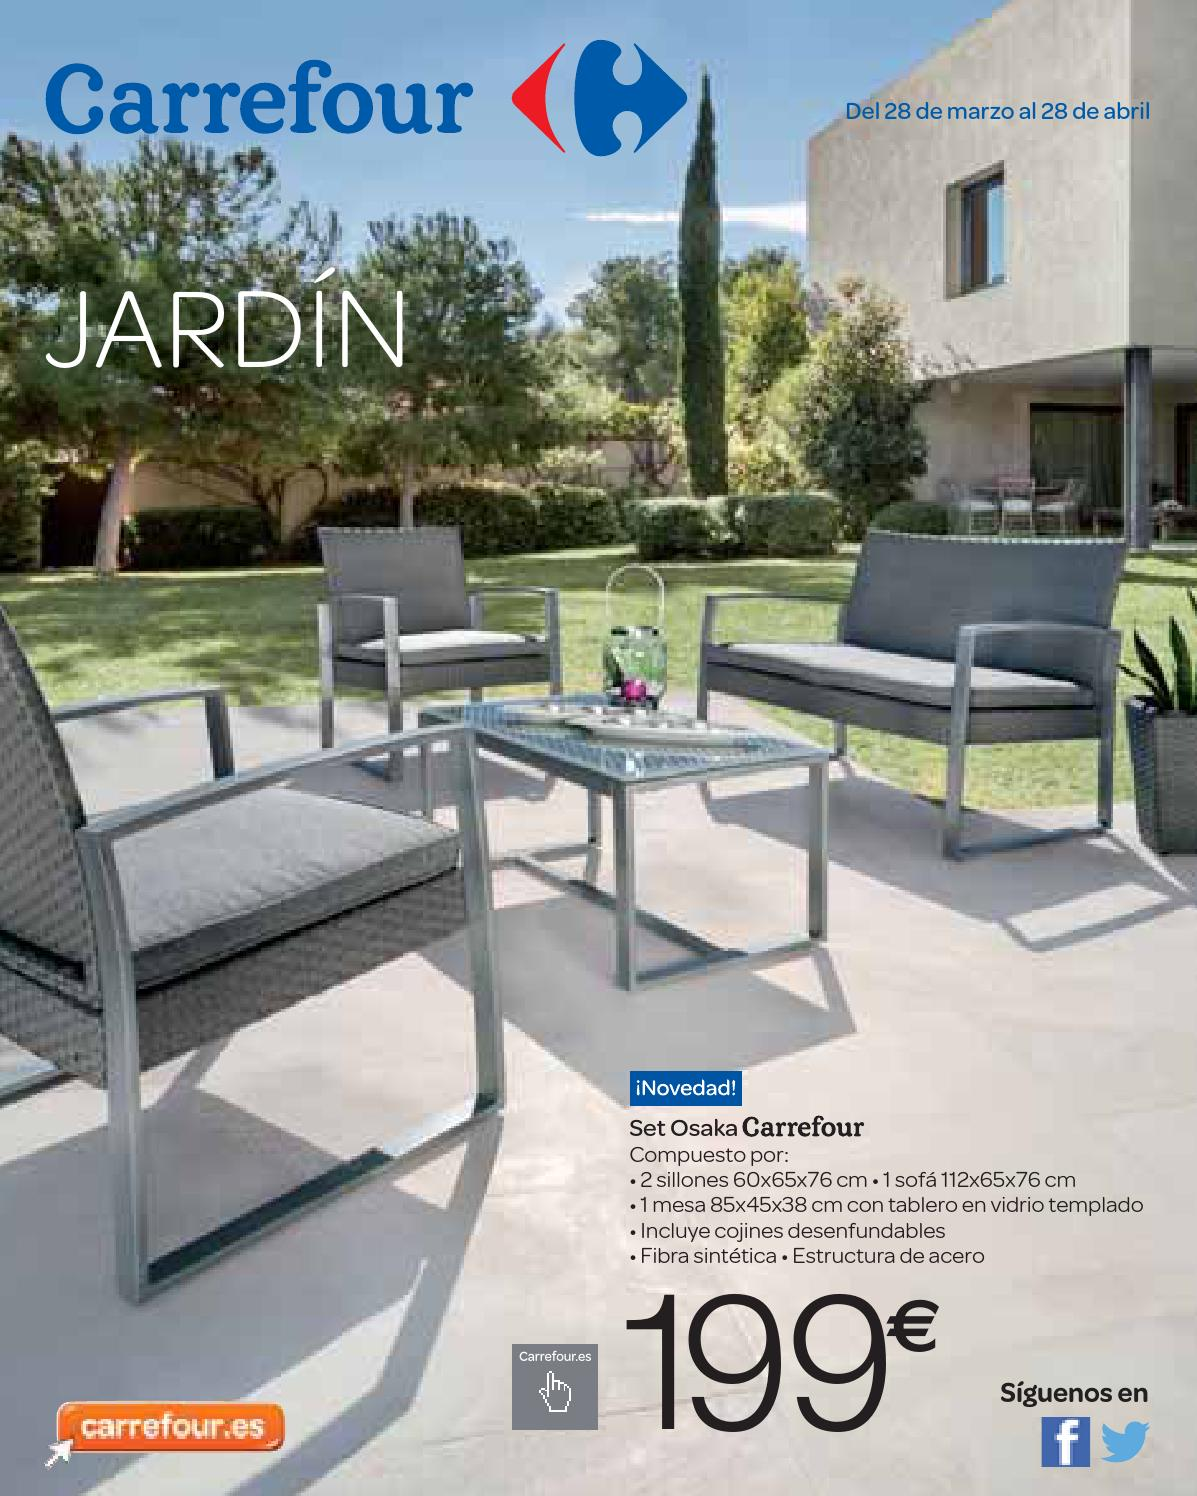 Carrefour jard n by andr gon alves issuu for Conjuntos de jardin carrefour